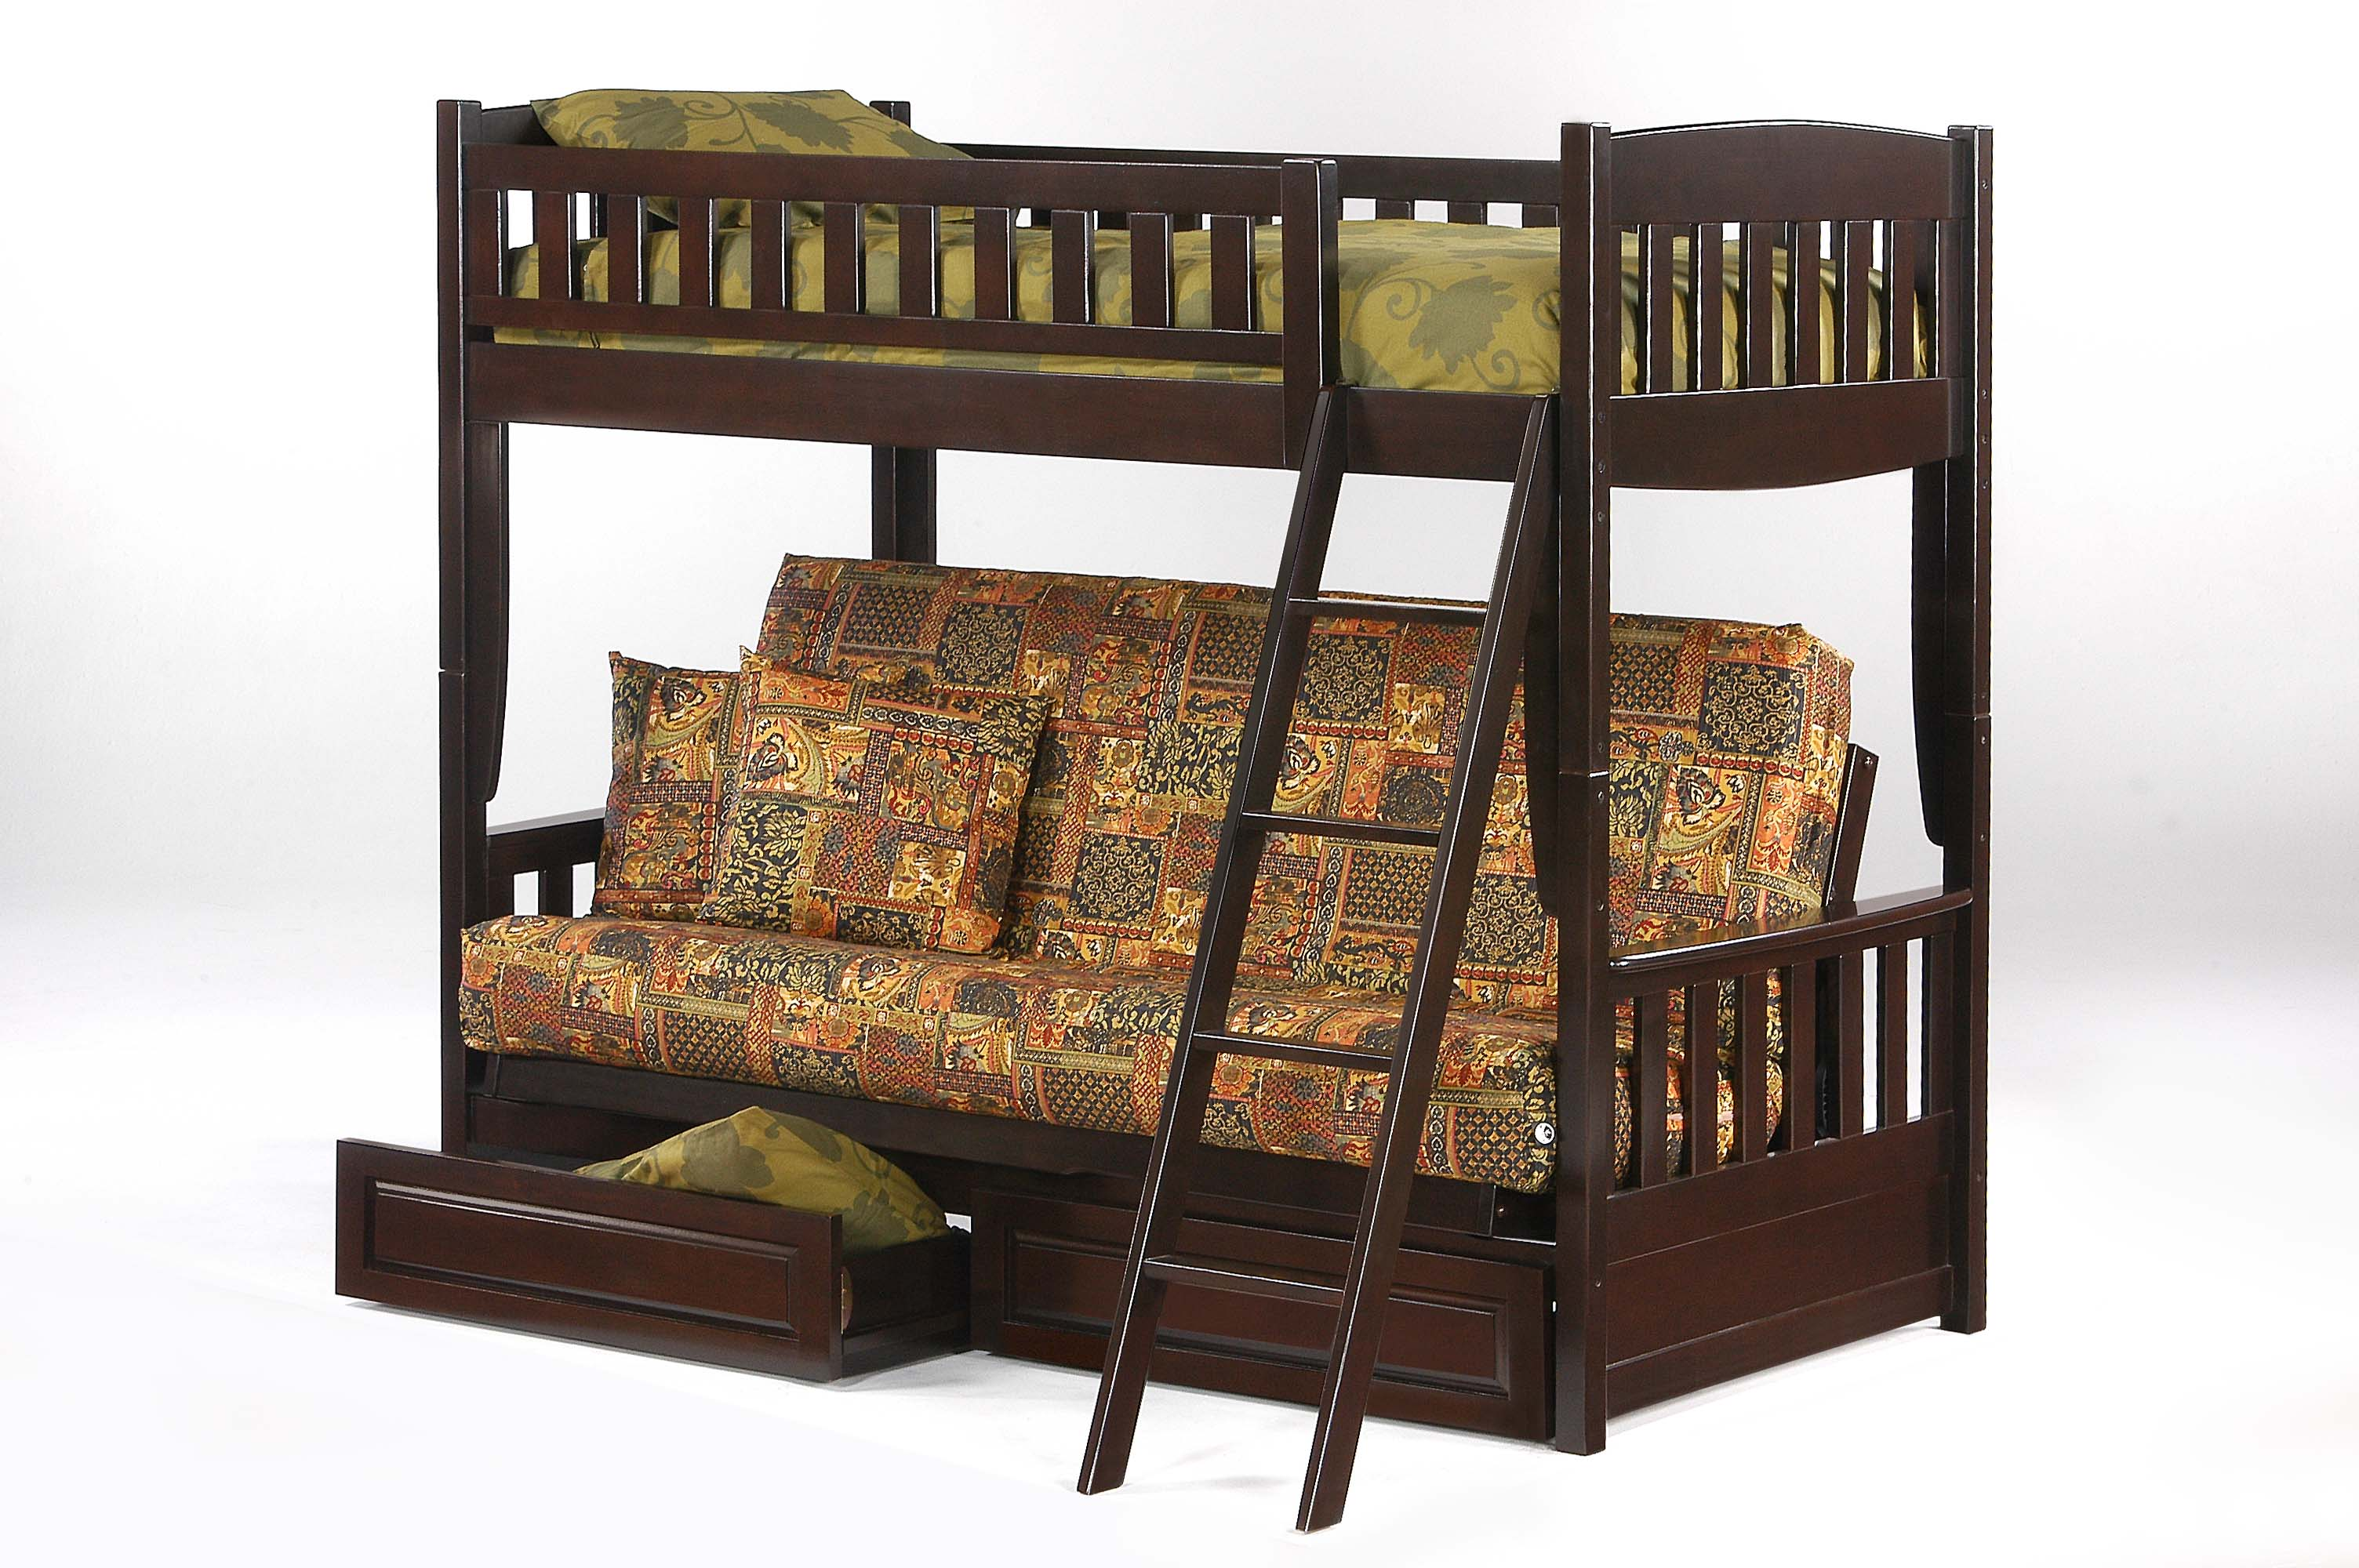 Cinnamon Futon Bunk Night Day Futon D Or Natural